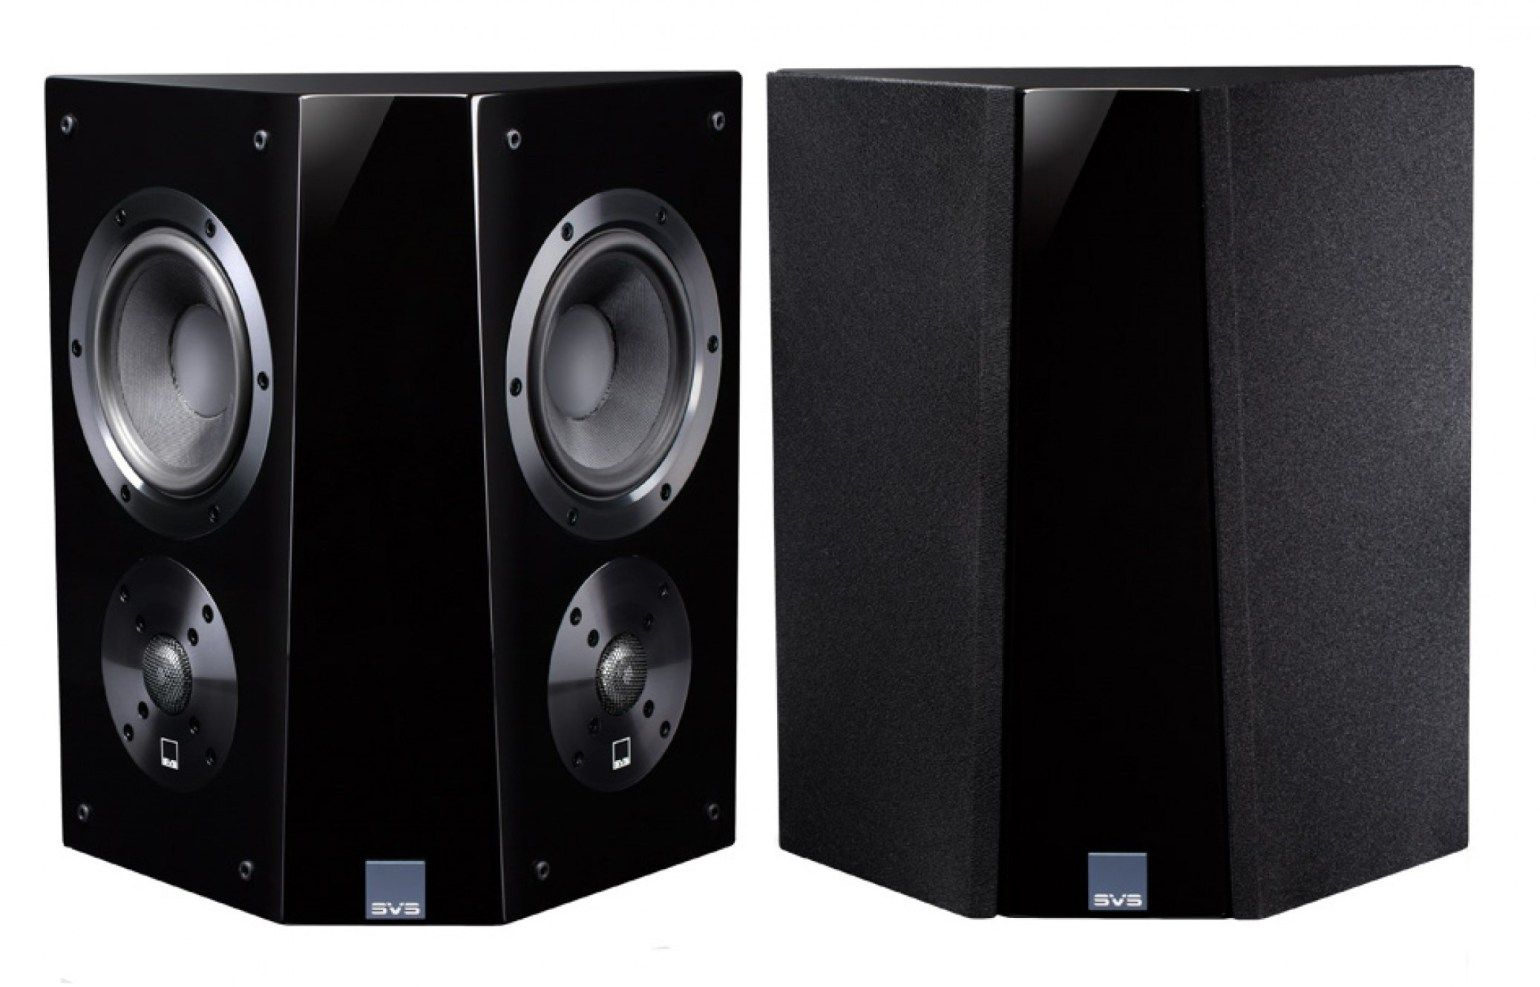 SVS Ultra Tower Surround System Review   System, Speaker system, Surround